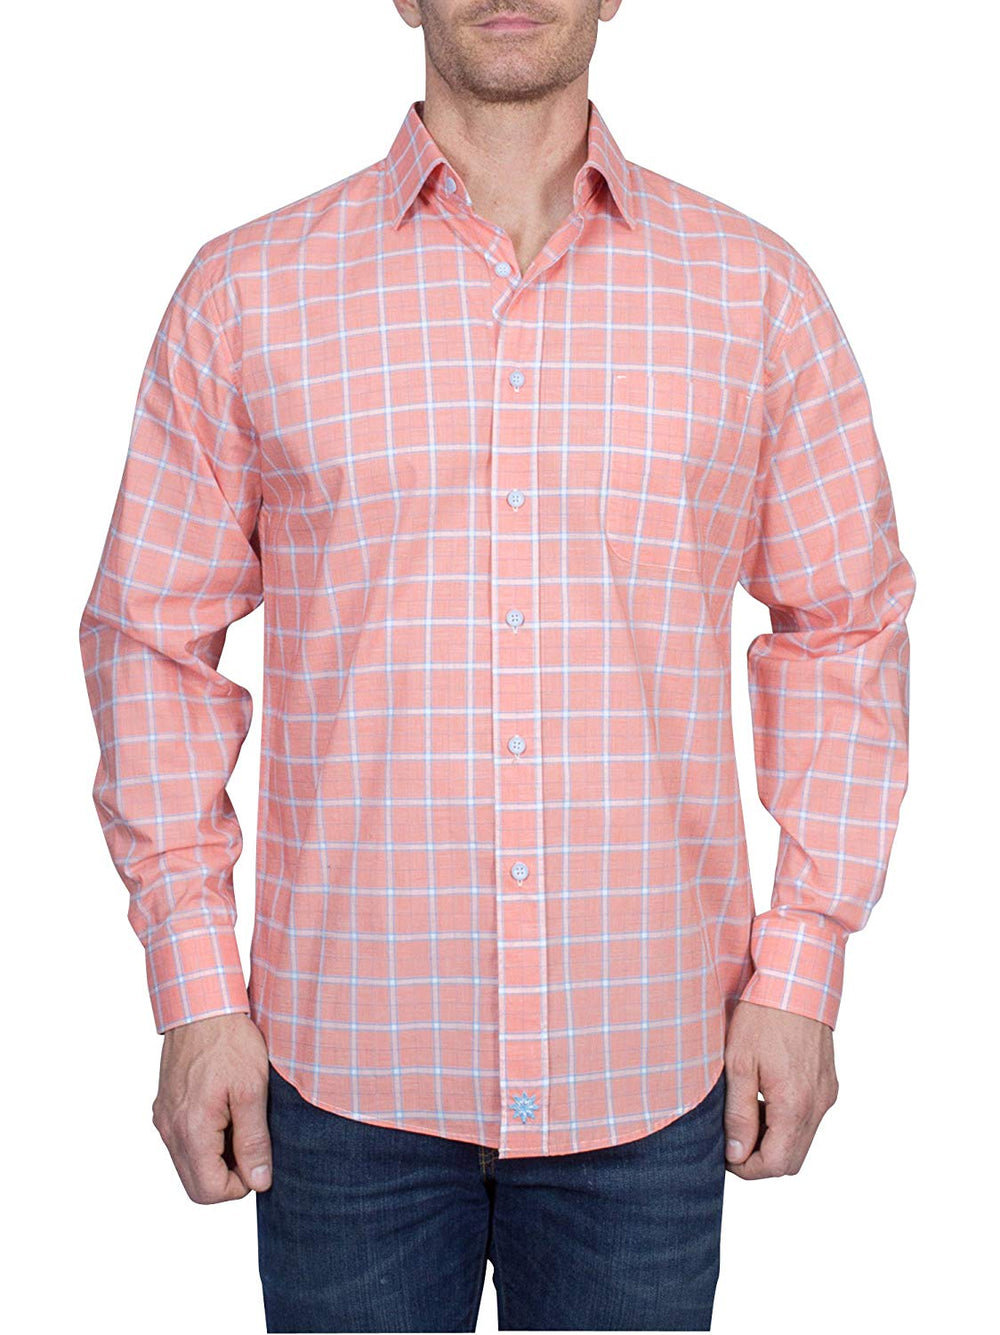 Thaddeus PARK Mens Long Sleeve Plaid Button Down Cotton Shirt with Chest Pocket, Melon Orange